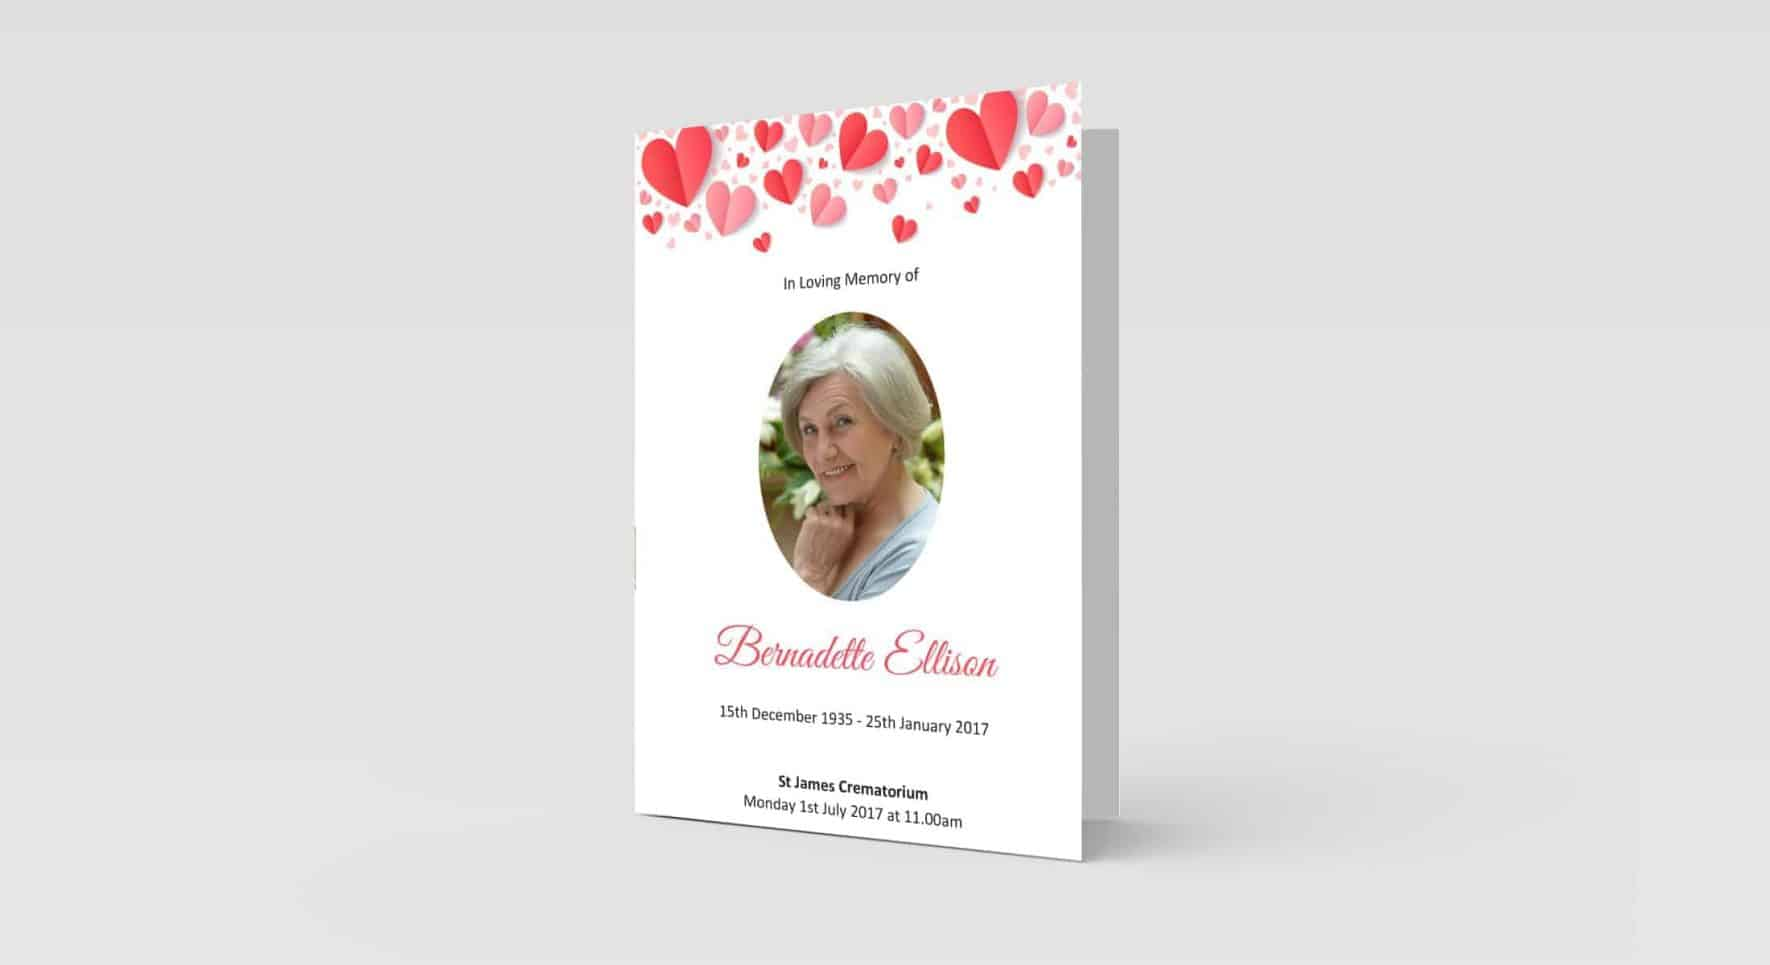 funeral order of service Bunched Hearts